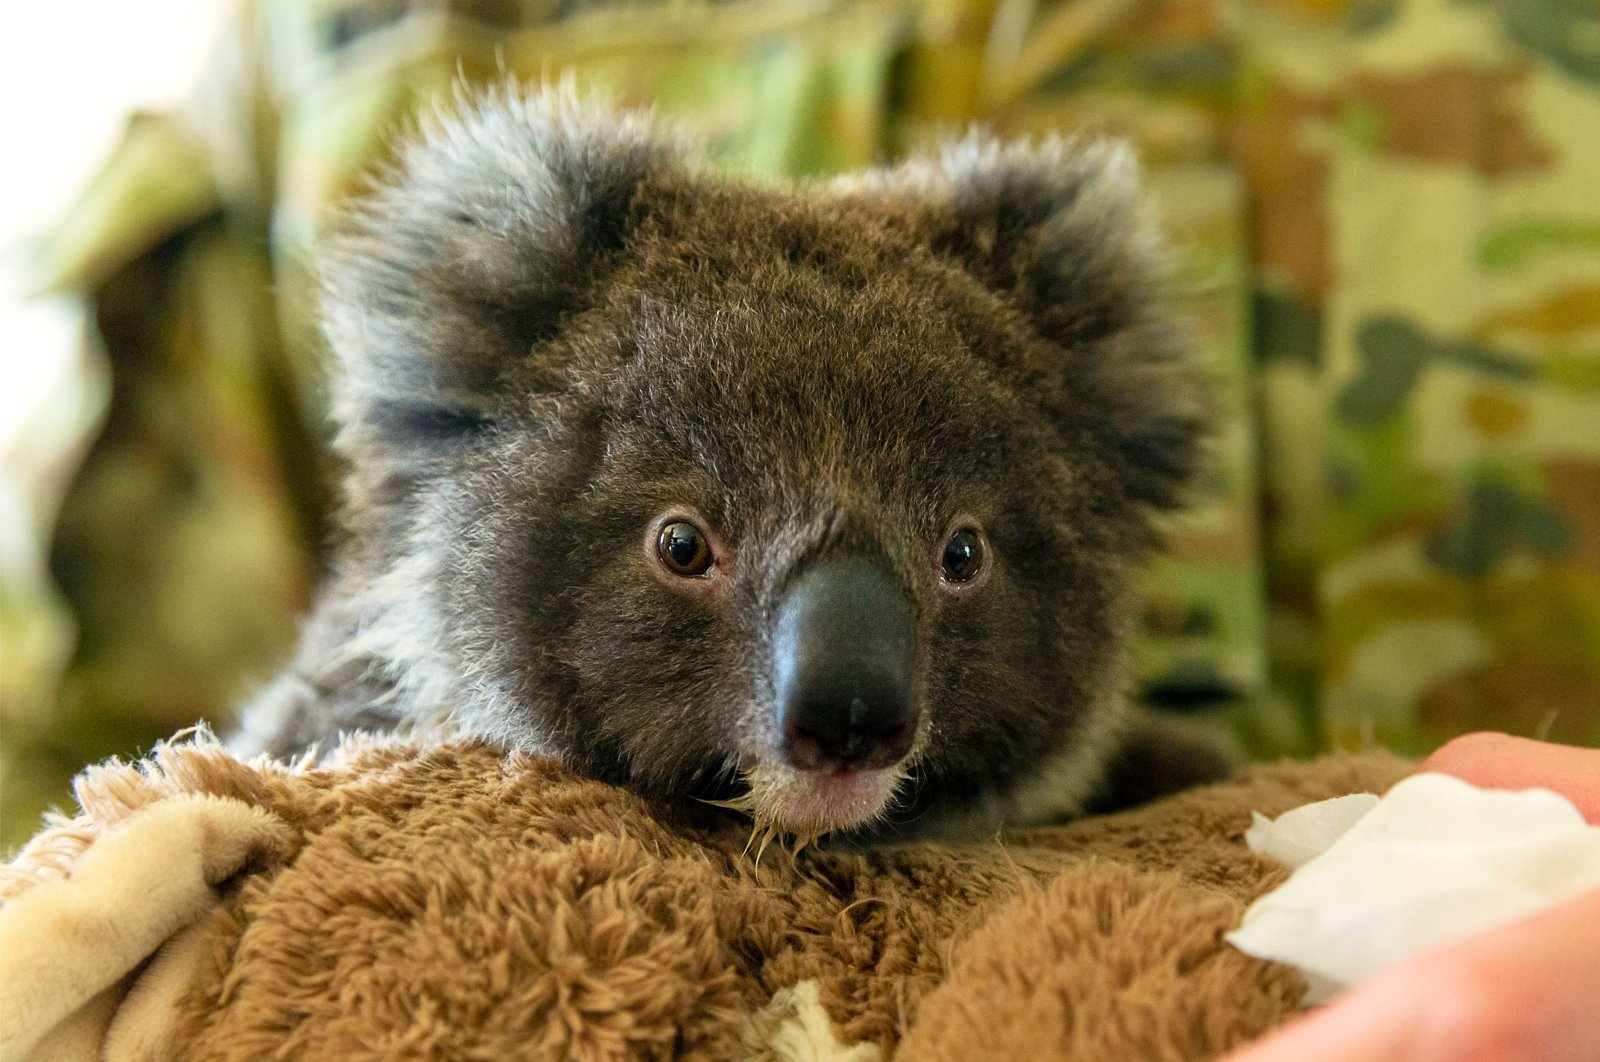 An orphaned baby koala being fed by Private Tyler Moseley-Greatwich from the 10th/27th Battalion, Royal South Australia Regiment, at the Kangaroo Island Wildlife Park in Kingscot, Jan. 7, 2020. (Photo by Tristan Kennedy/Australian Department of Defence via AFP)